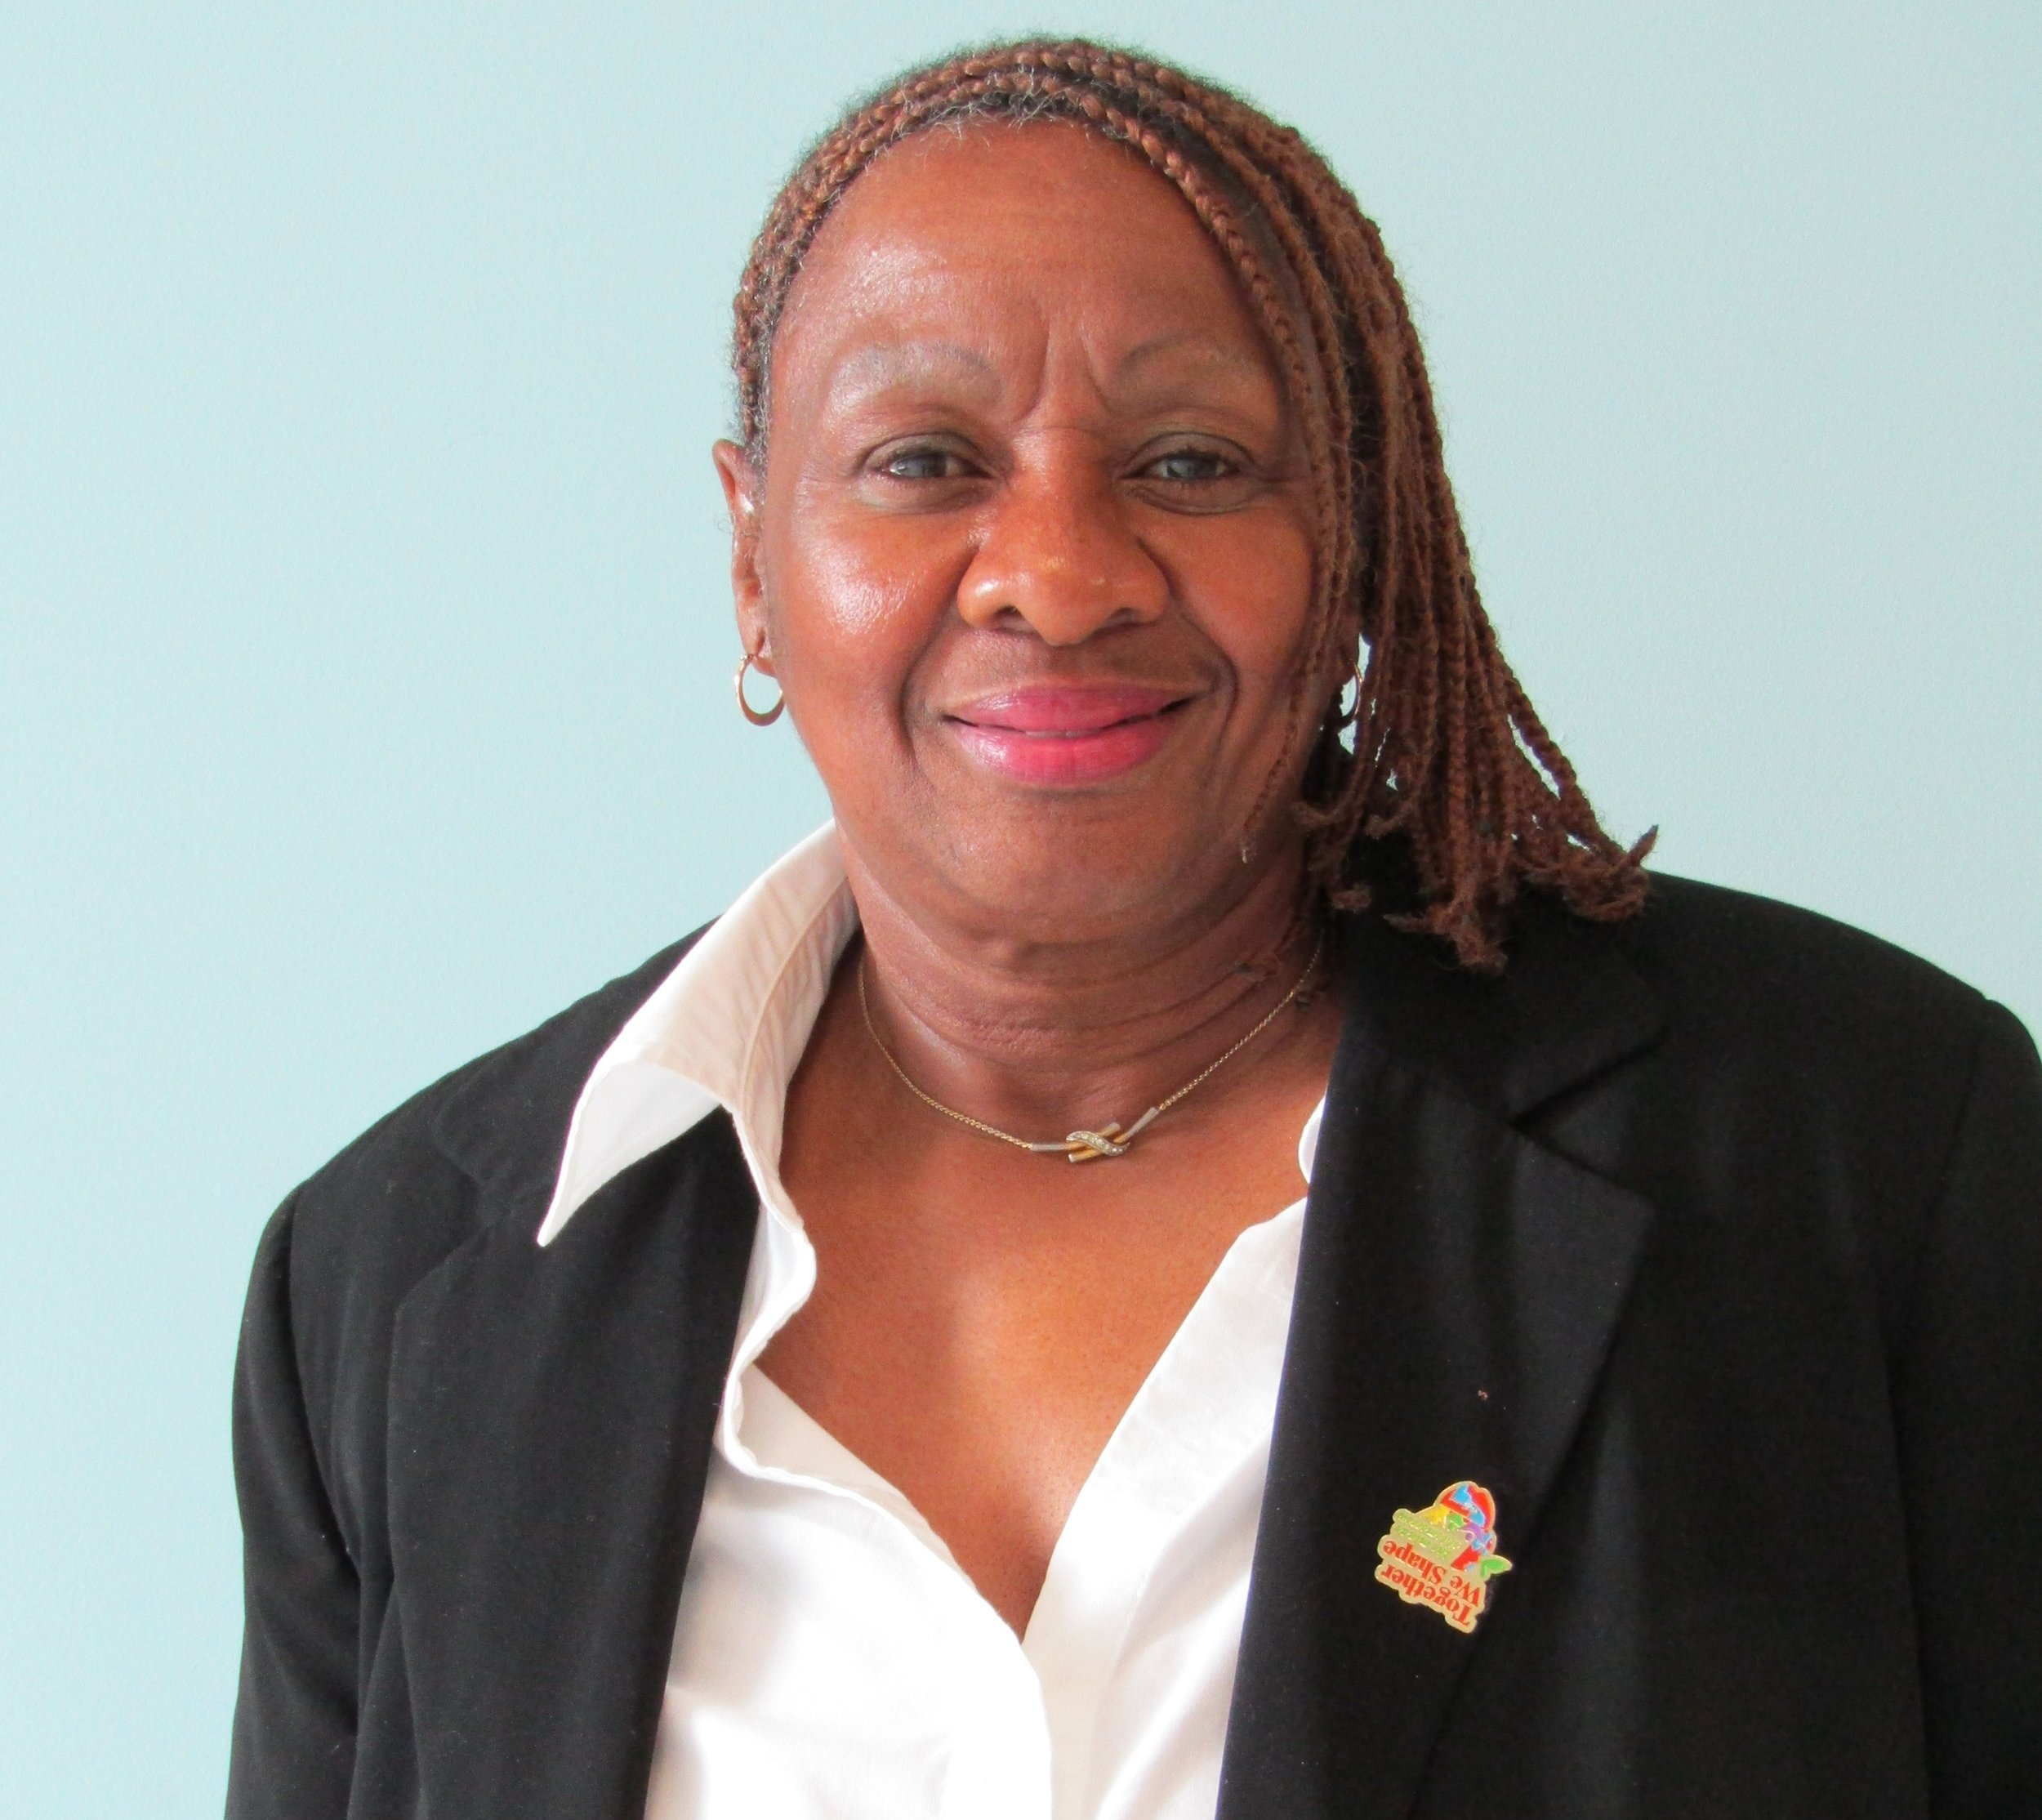 Minnie Conners, Educational Support Staff